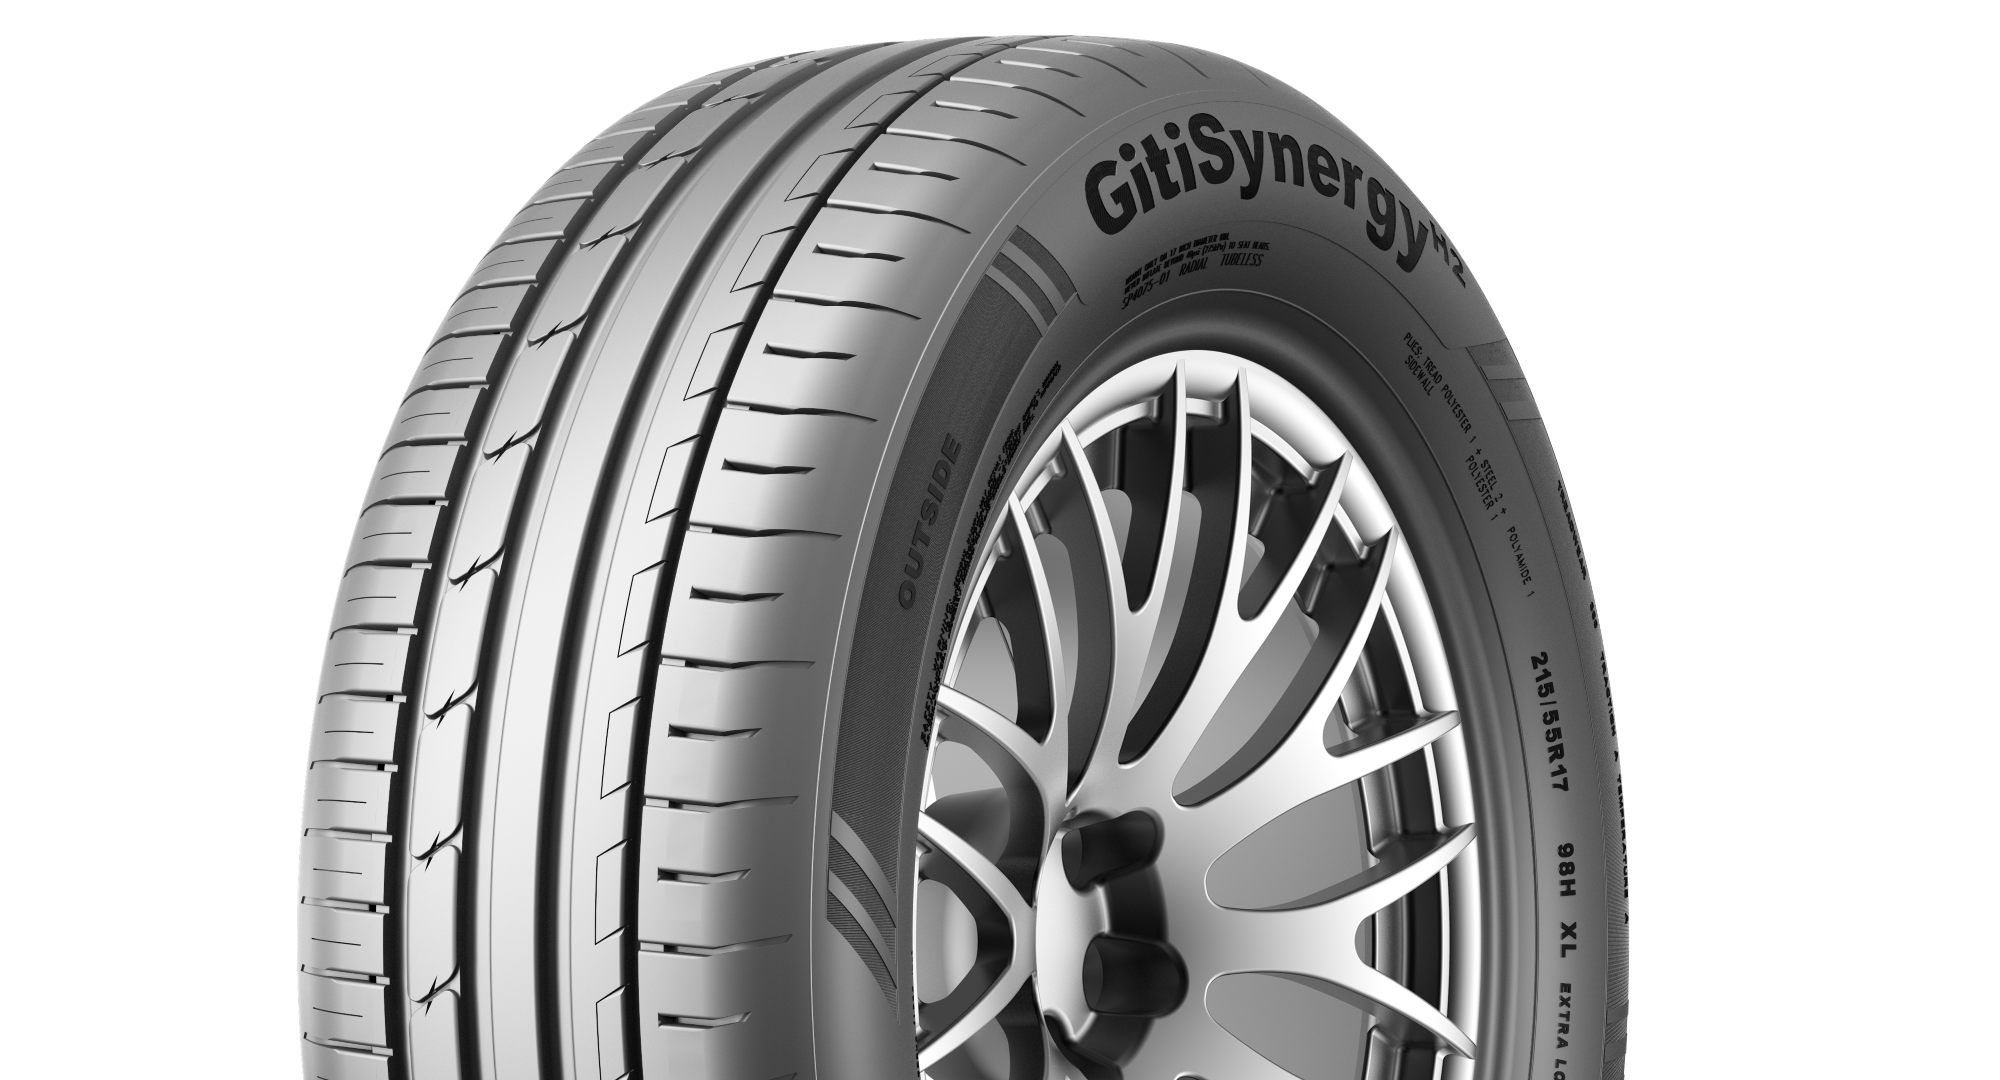 AA-rated GitiSynergyH2 selected in second size for VW Caddy 5 OE fitment